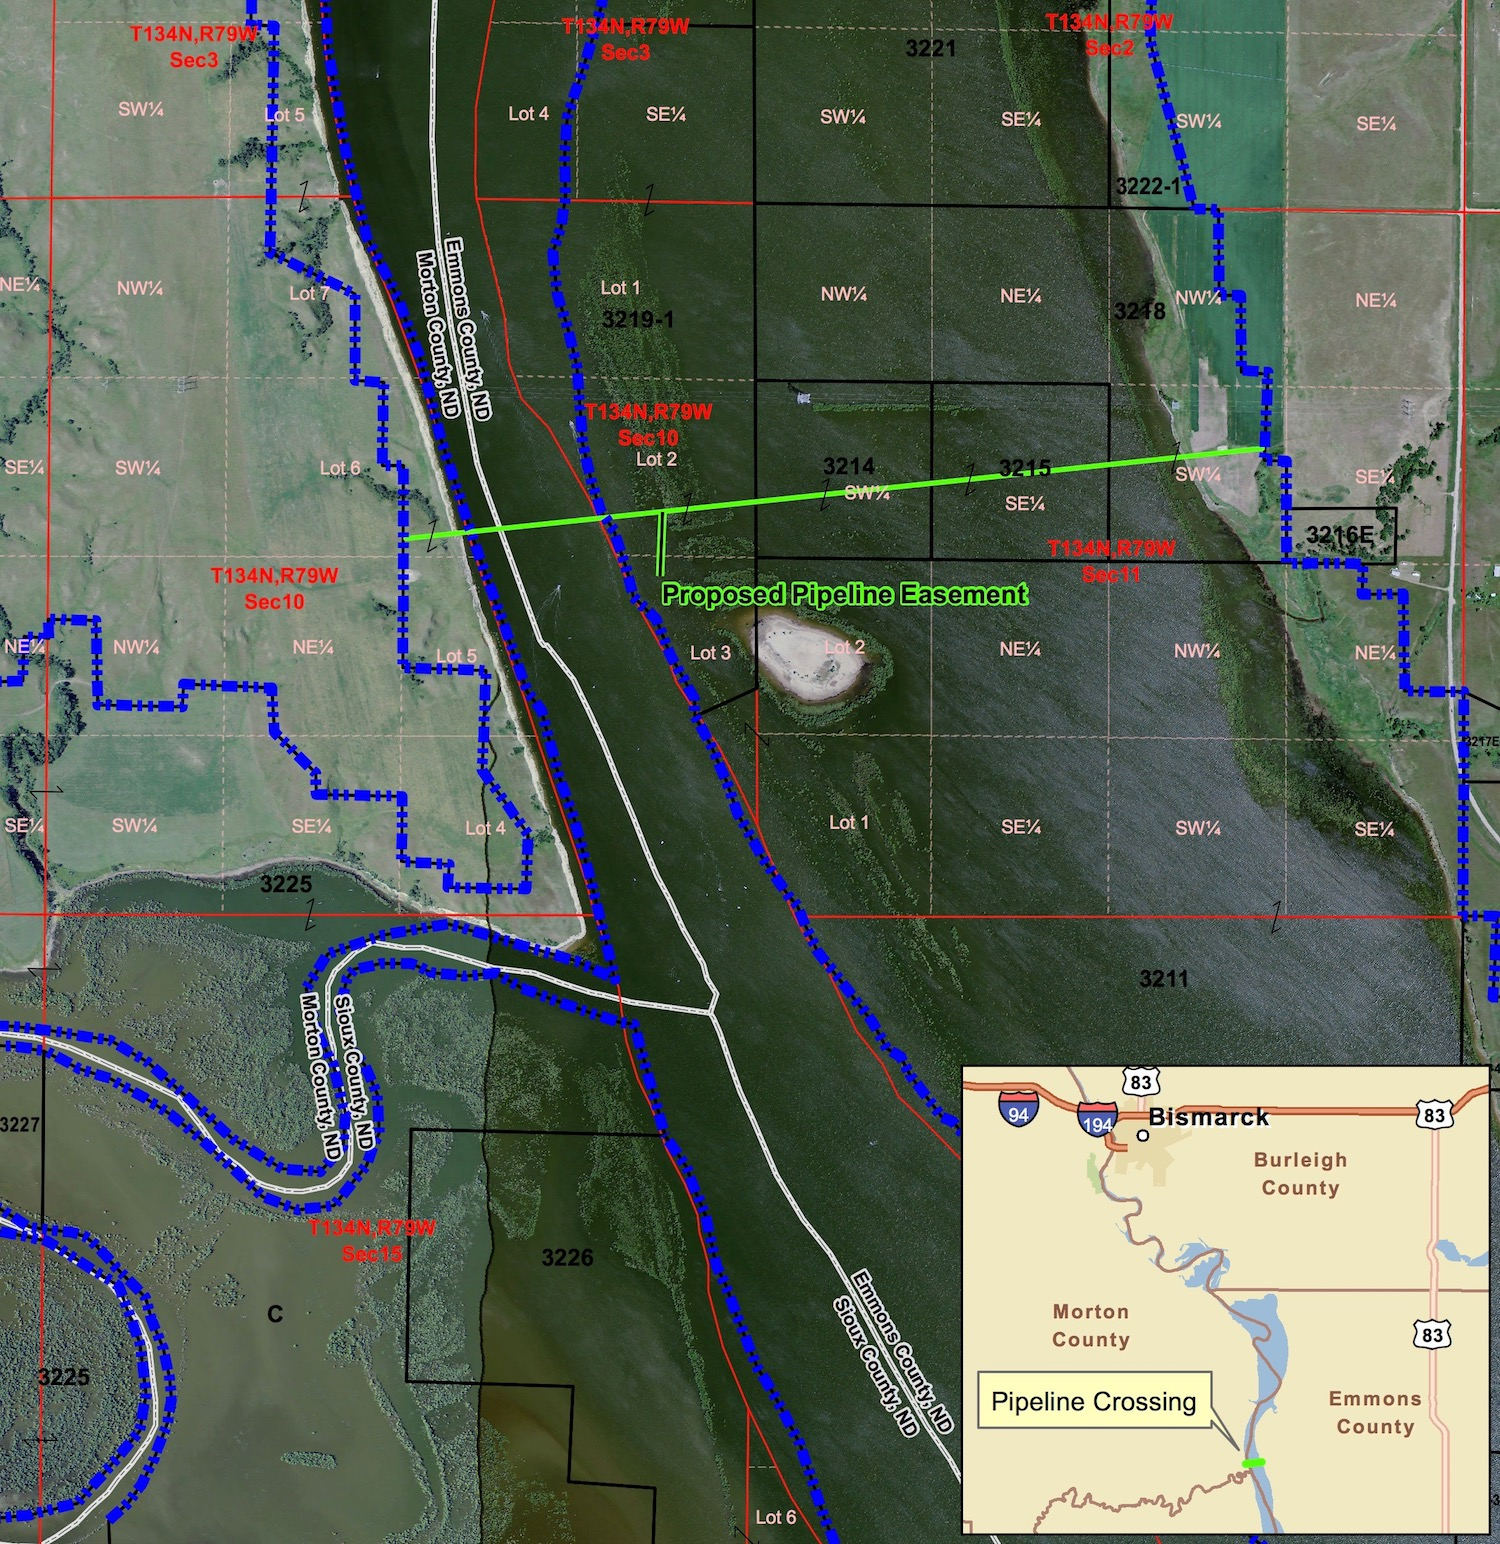 A Map Included In The Eat For The Dakota Access Pipeline Shows The Area Where Drilling Will Occur In North Dakota Source U S Army Corps Of Engineers